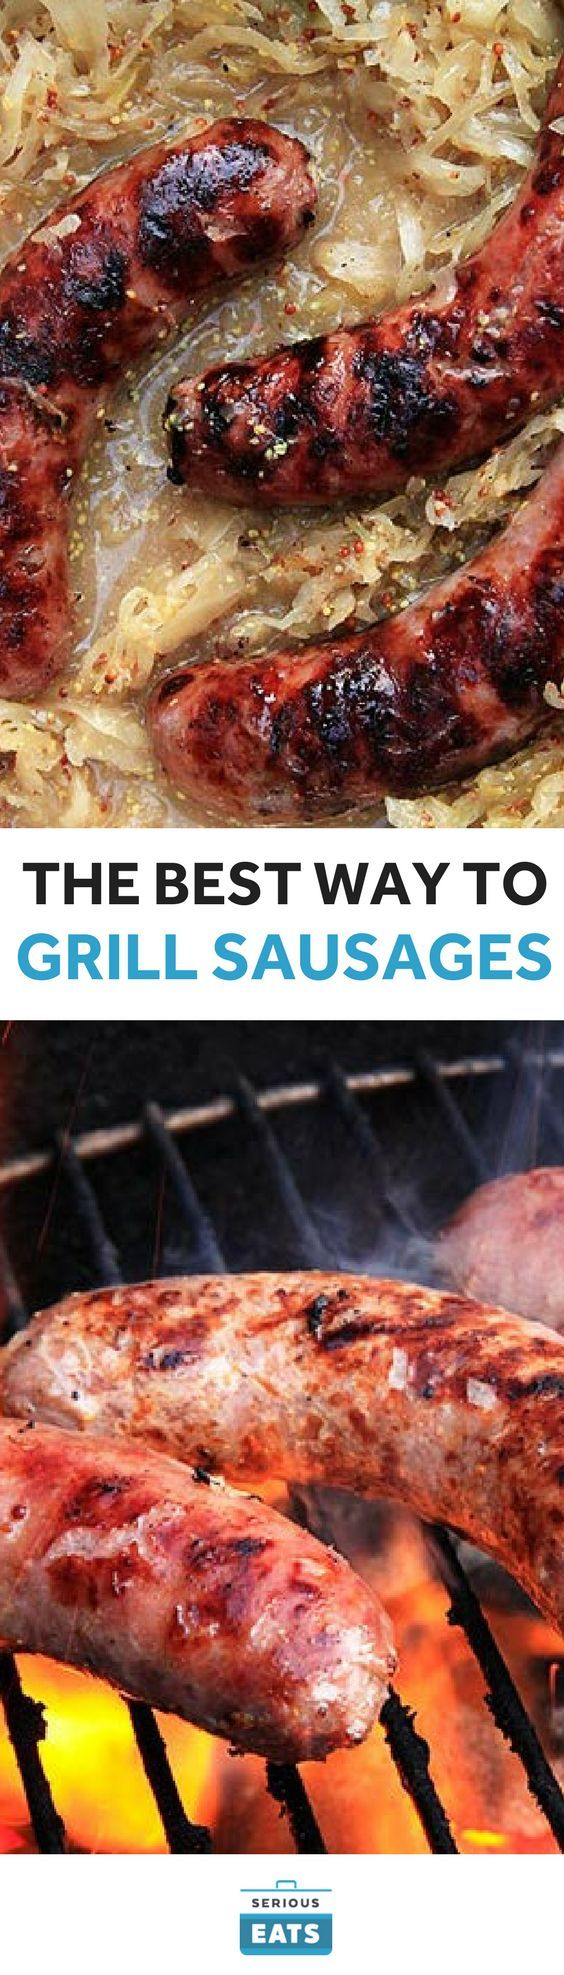 You start with great sausages, and you don't mess 'em up. That's easier said than done.